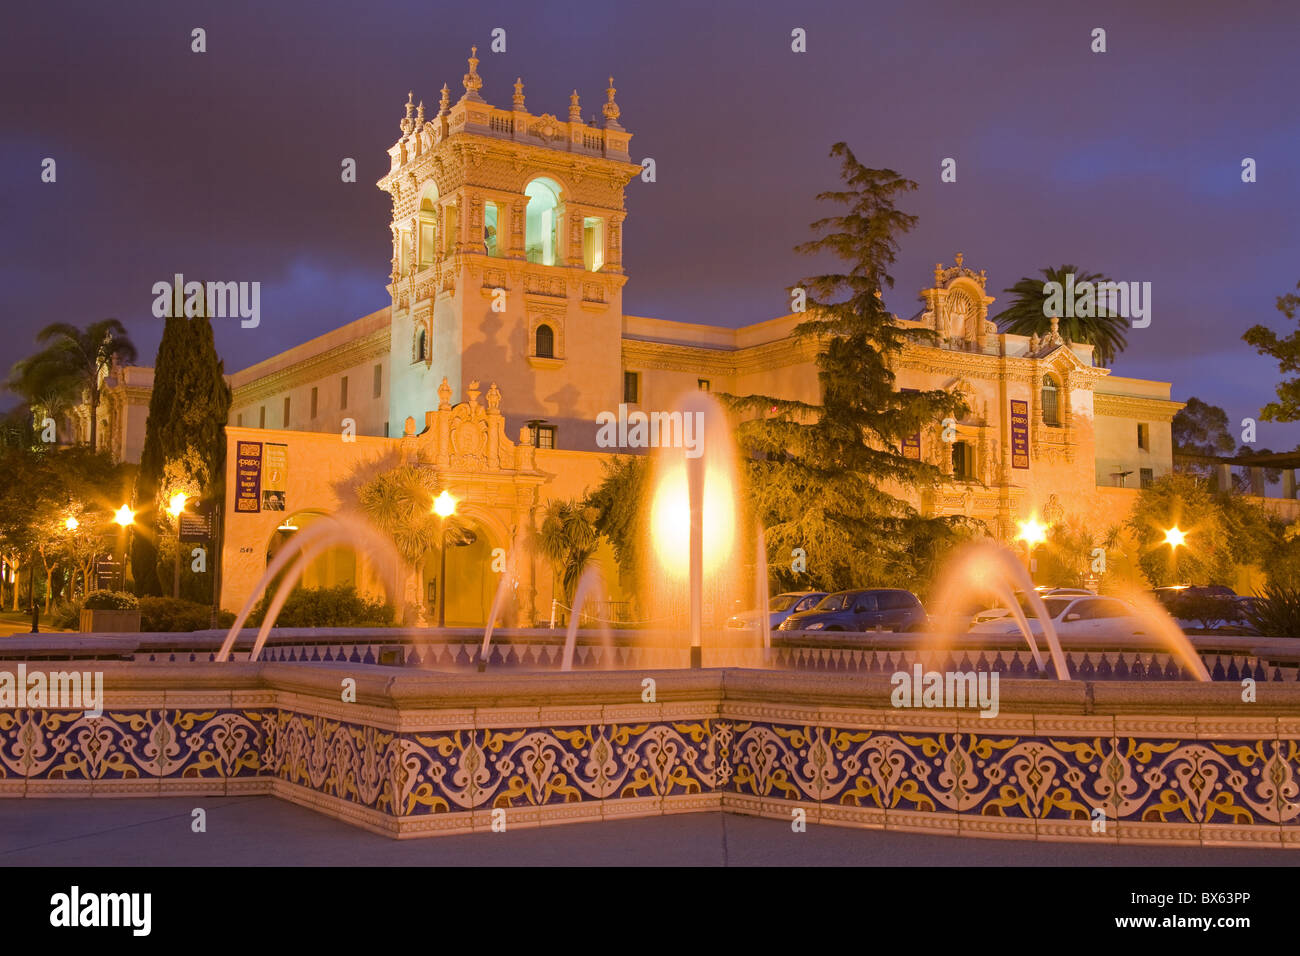 House of Hospitality in Balboa Park, San Diego, California, United States of America, North America - Stock Image